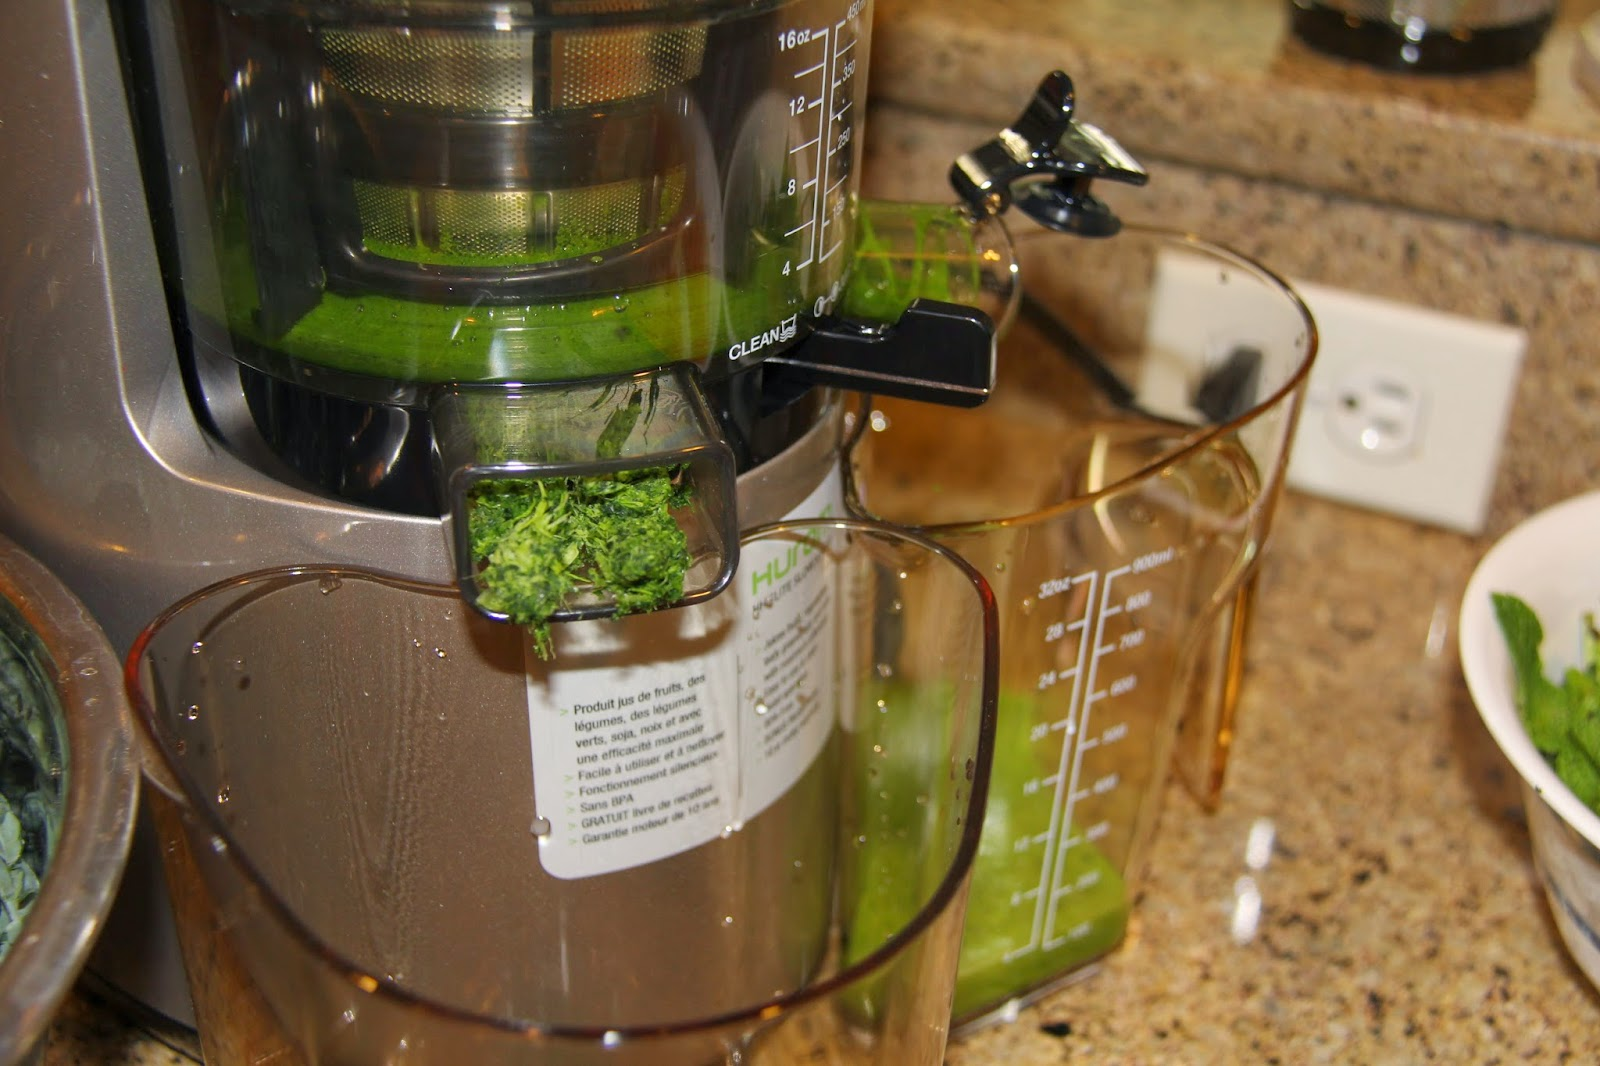 The pulp came out nearly dry! I give this juicer 5 stars!